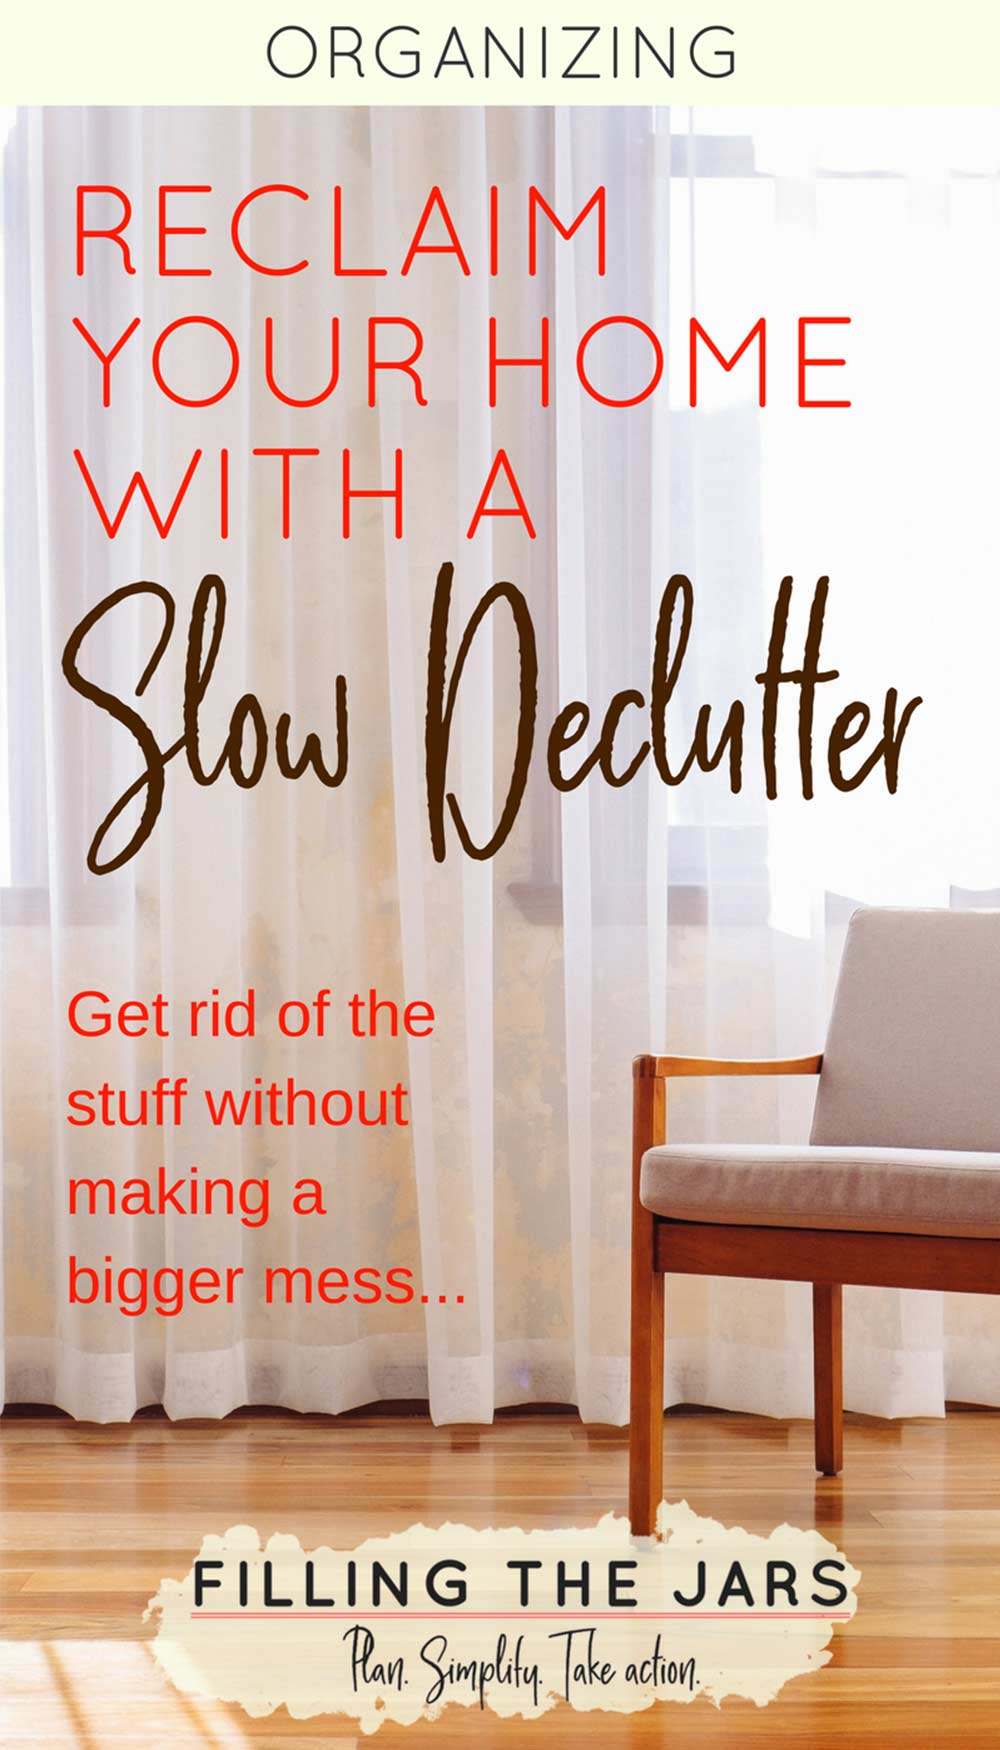 Text reclaim your home with a slow declutter over background image of simple modern chair on wood floor in front of white sheer curtains.